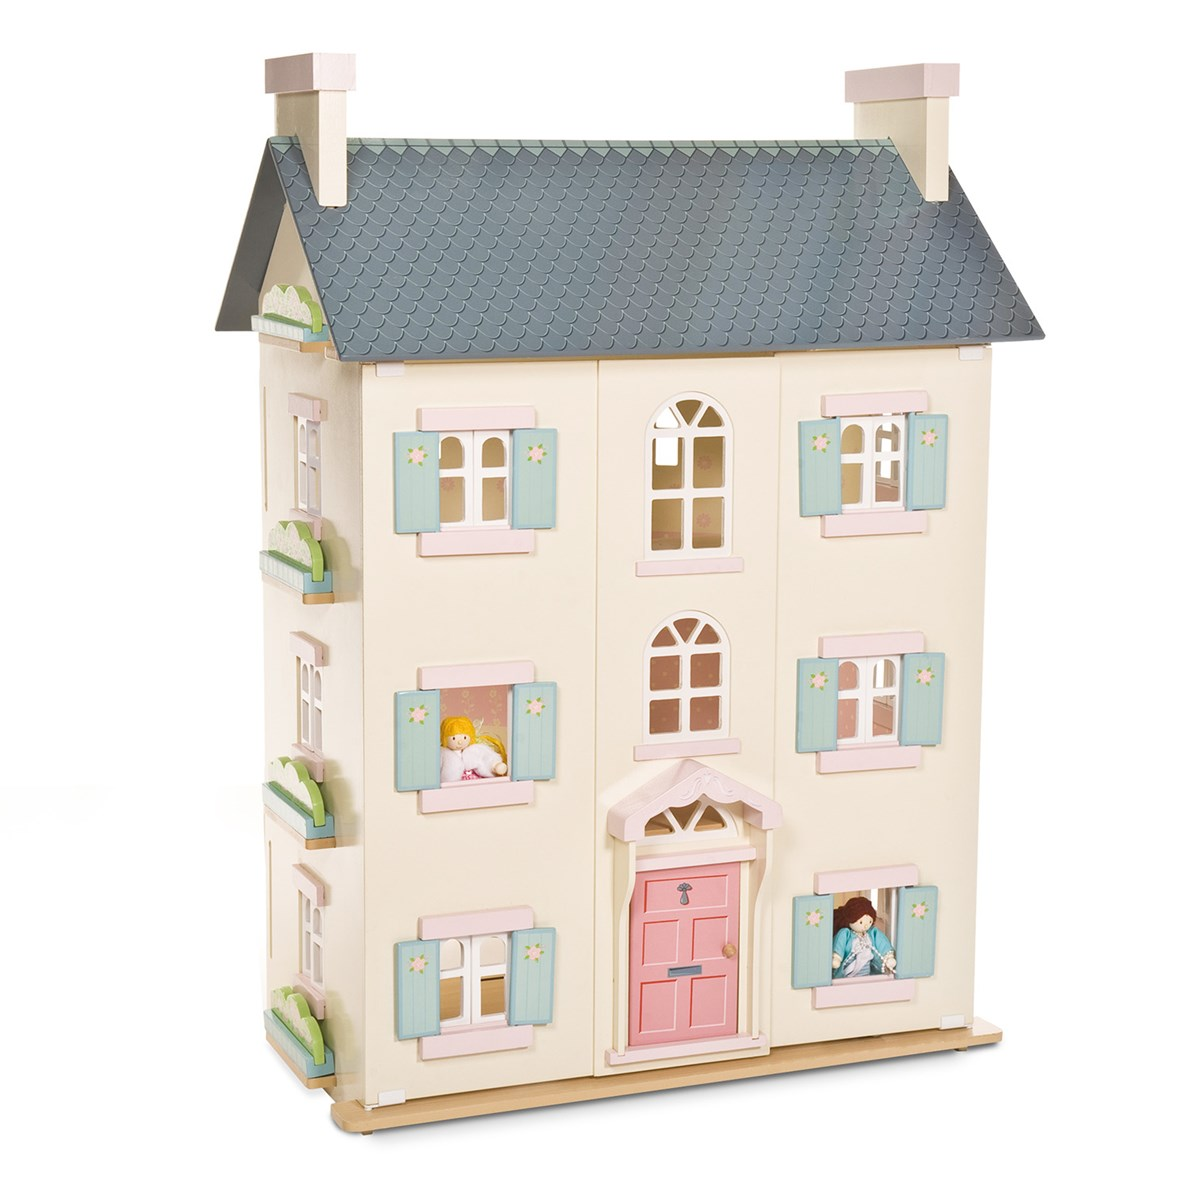 a doll s house Start studying a doll's house learn vocabulary, terms, and more with flashcards, games, and other study tools.